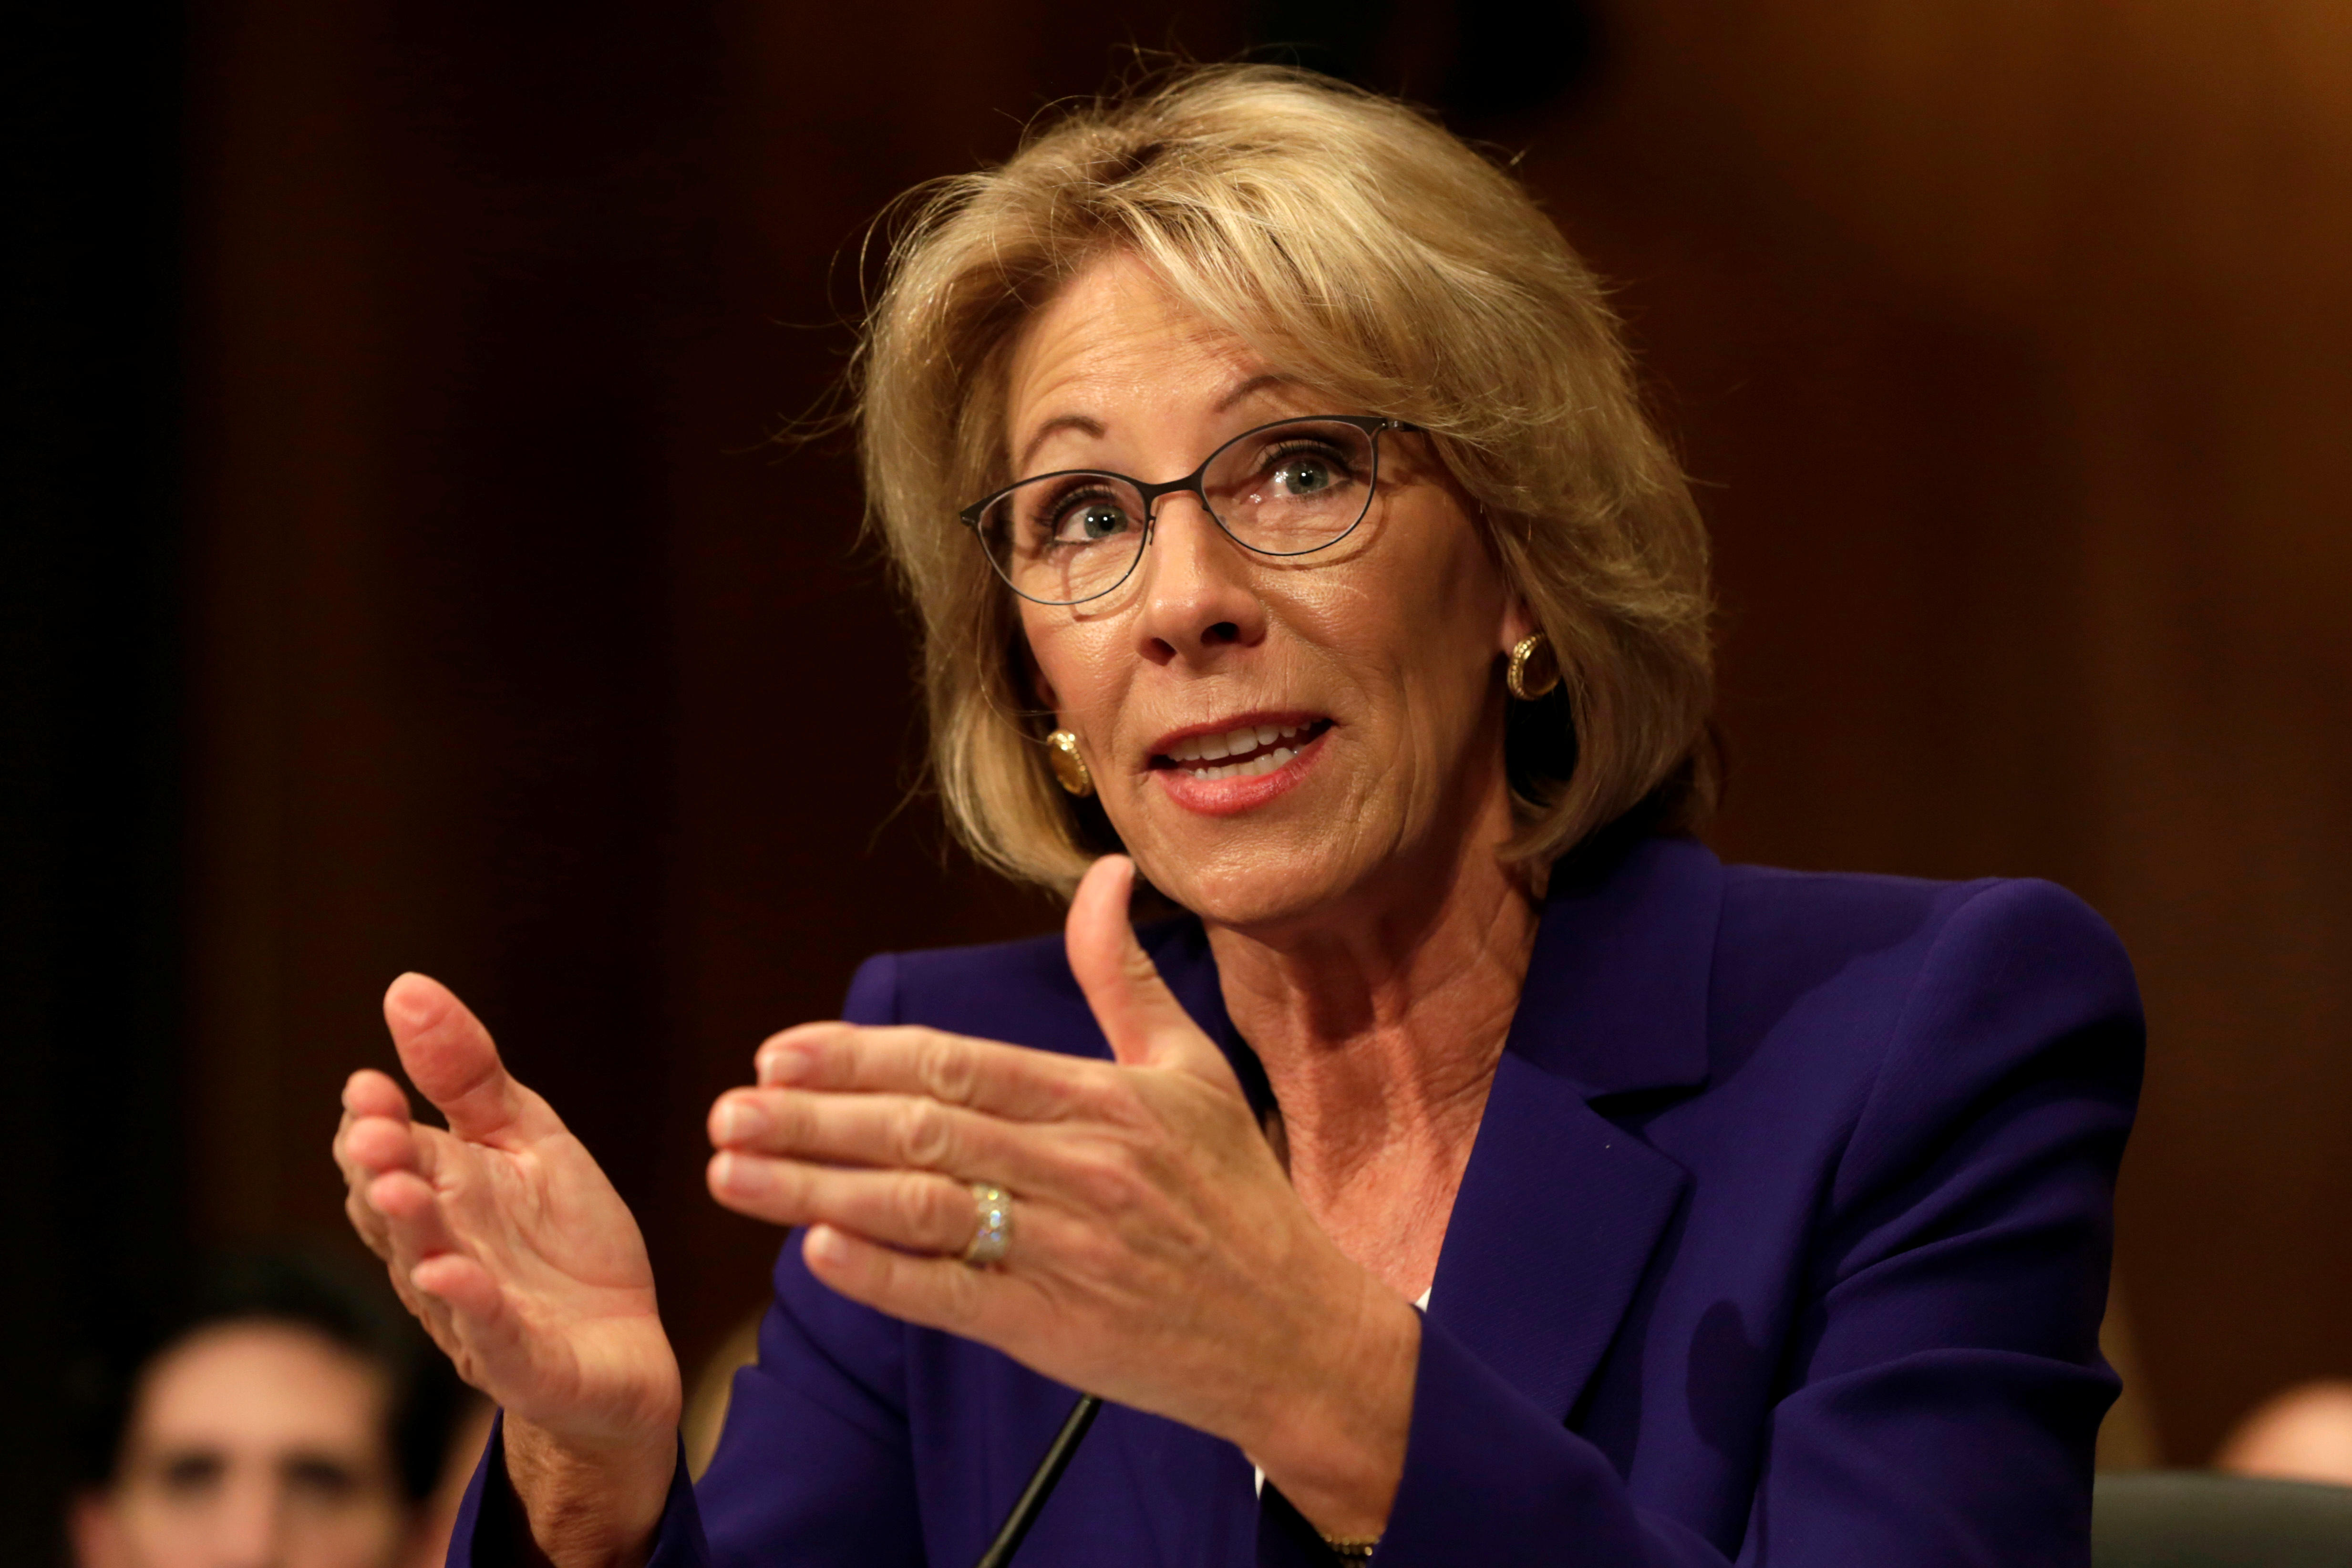 Betsy Devos Trumps Education Pick Plays >> Trump Education Pick Blames Staff For Poor Word Choice On Twitter